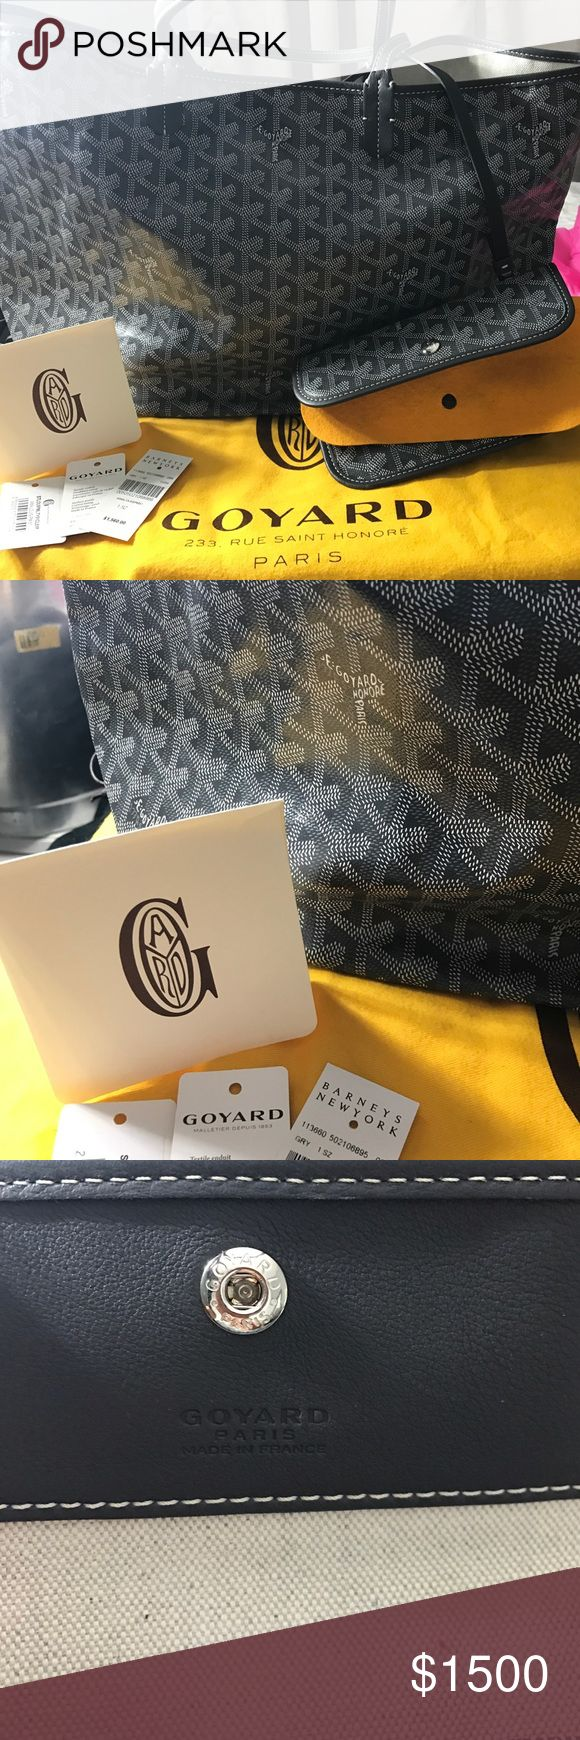 Goyard gray pm at Louis tote Original tags/ dustbag / never worn/ immaculate condition... cheaper on MERC/E/P ❌NO TRADES/BUNDLE DISCOUNTS/ Goyard Bags Totes